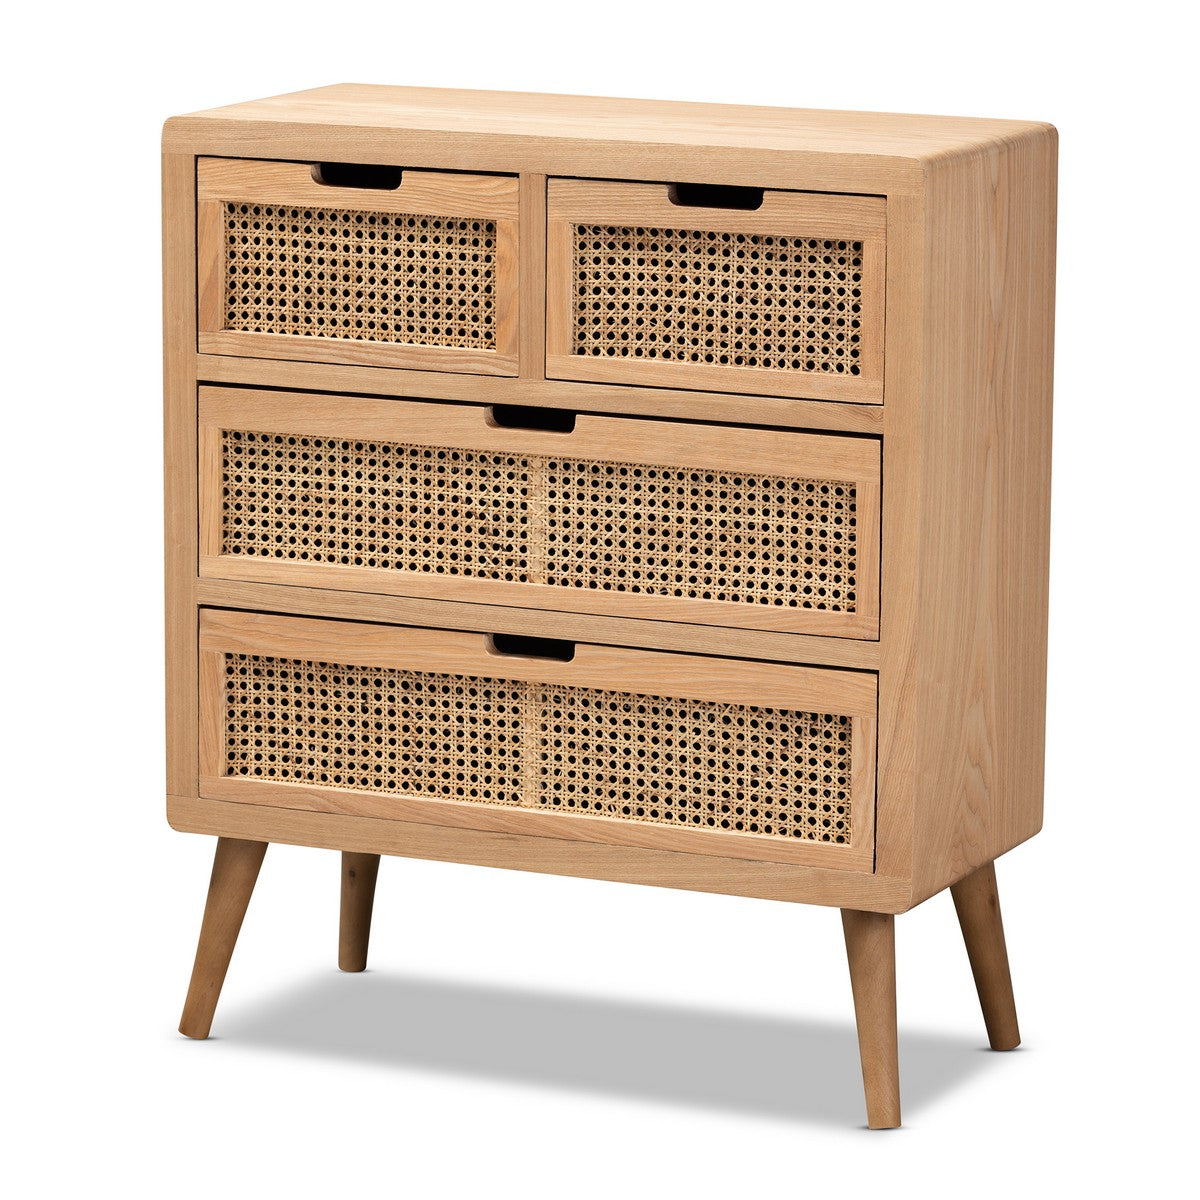 Baxton Studio Alina Mid-Century Modern Medium Oak Finished Wood and Rattan 4-Drawer Accent Chest Baxton Studio-Chests-Minimal And Modern - 1